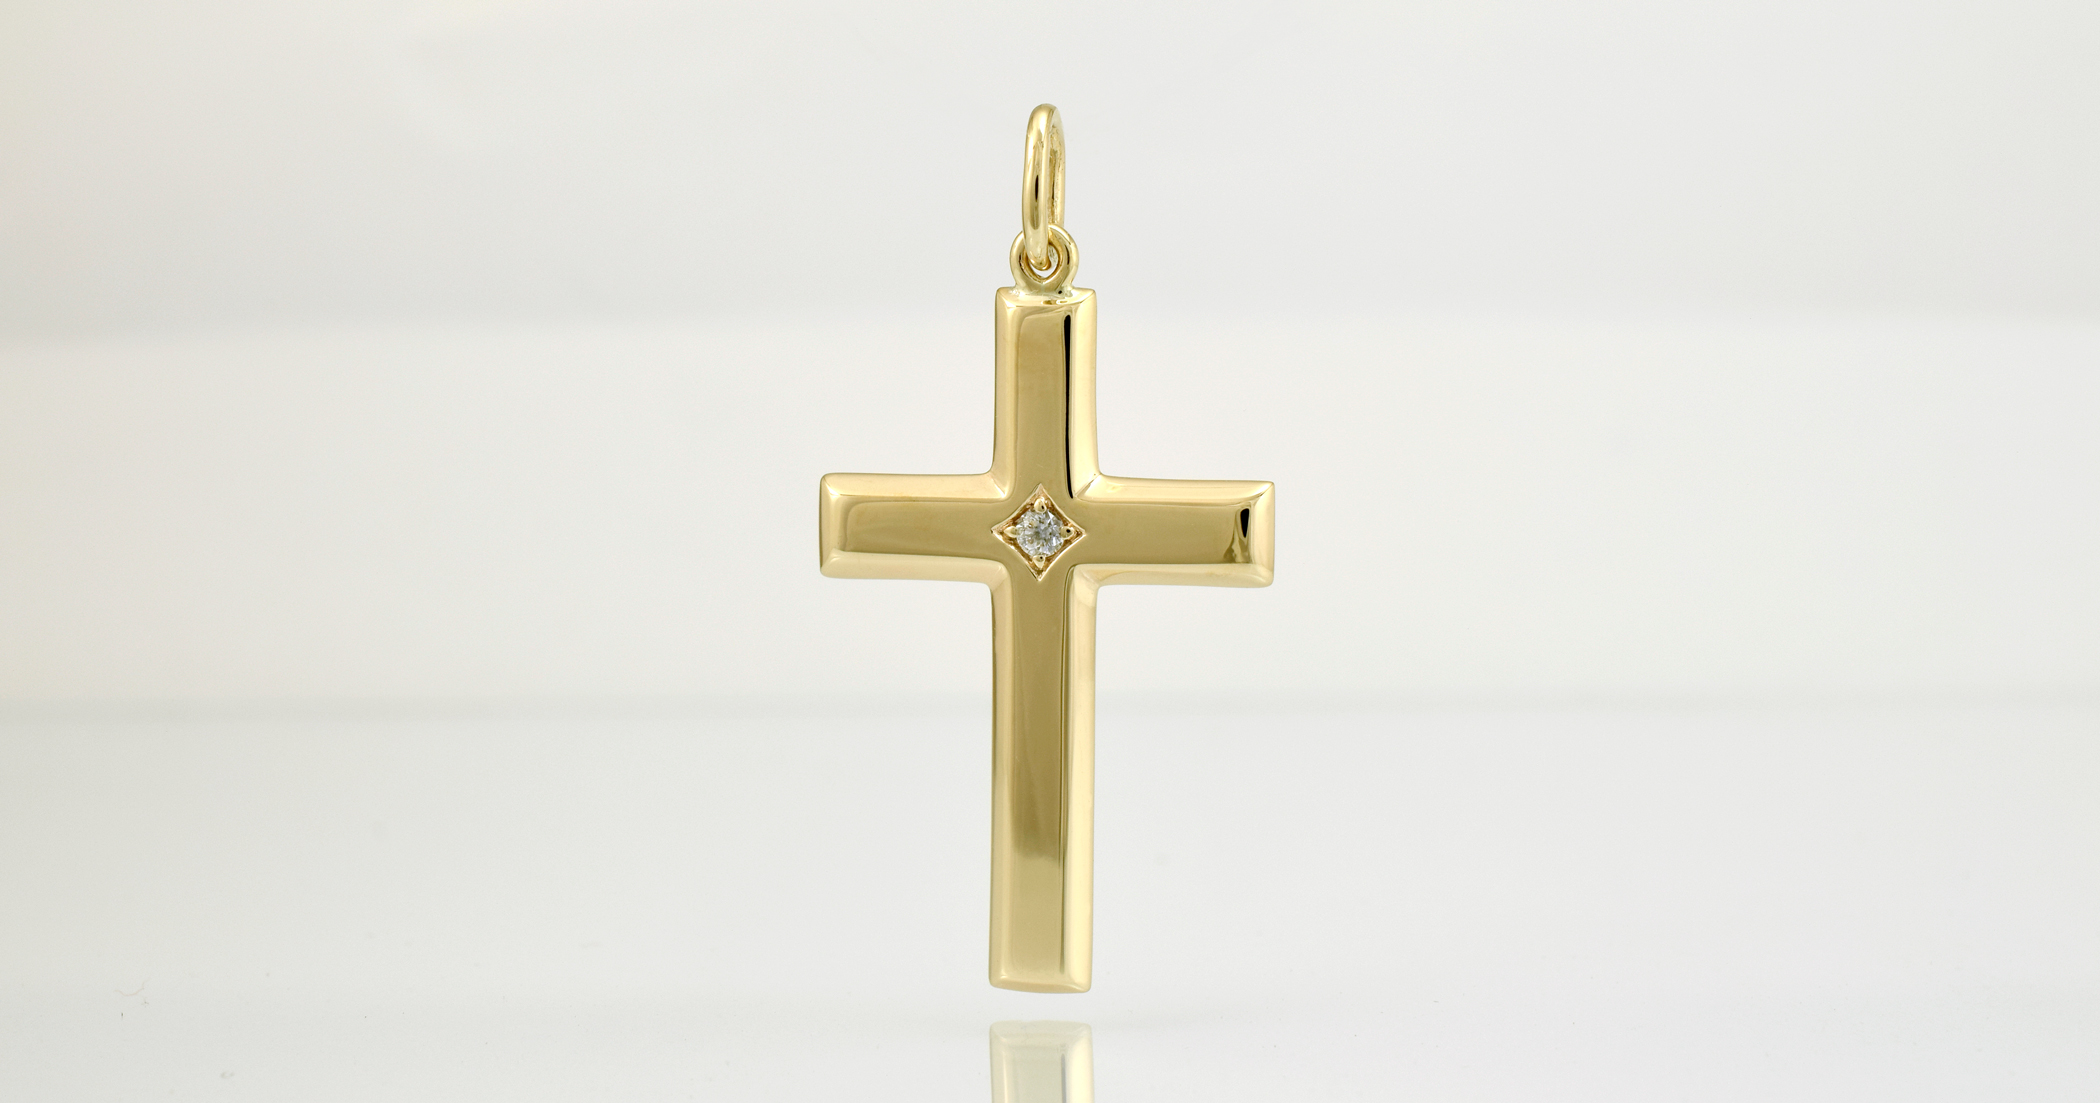 9ct yellow gold, approx 3.2cm long